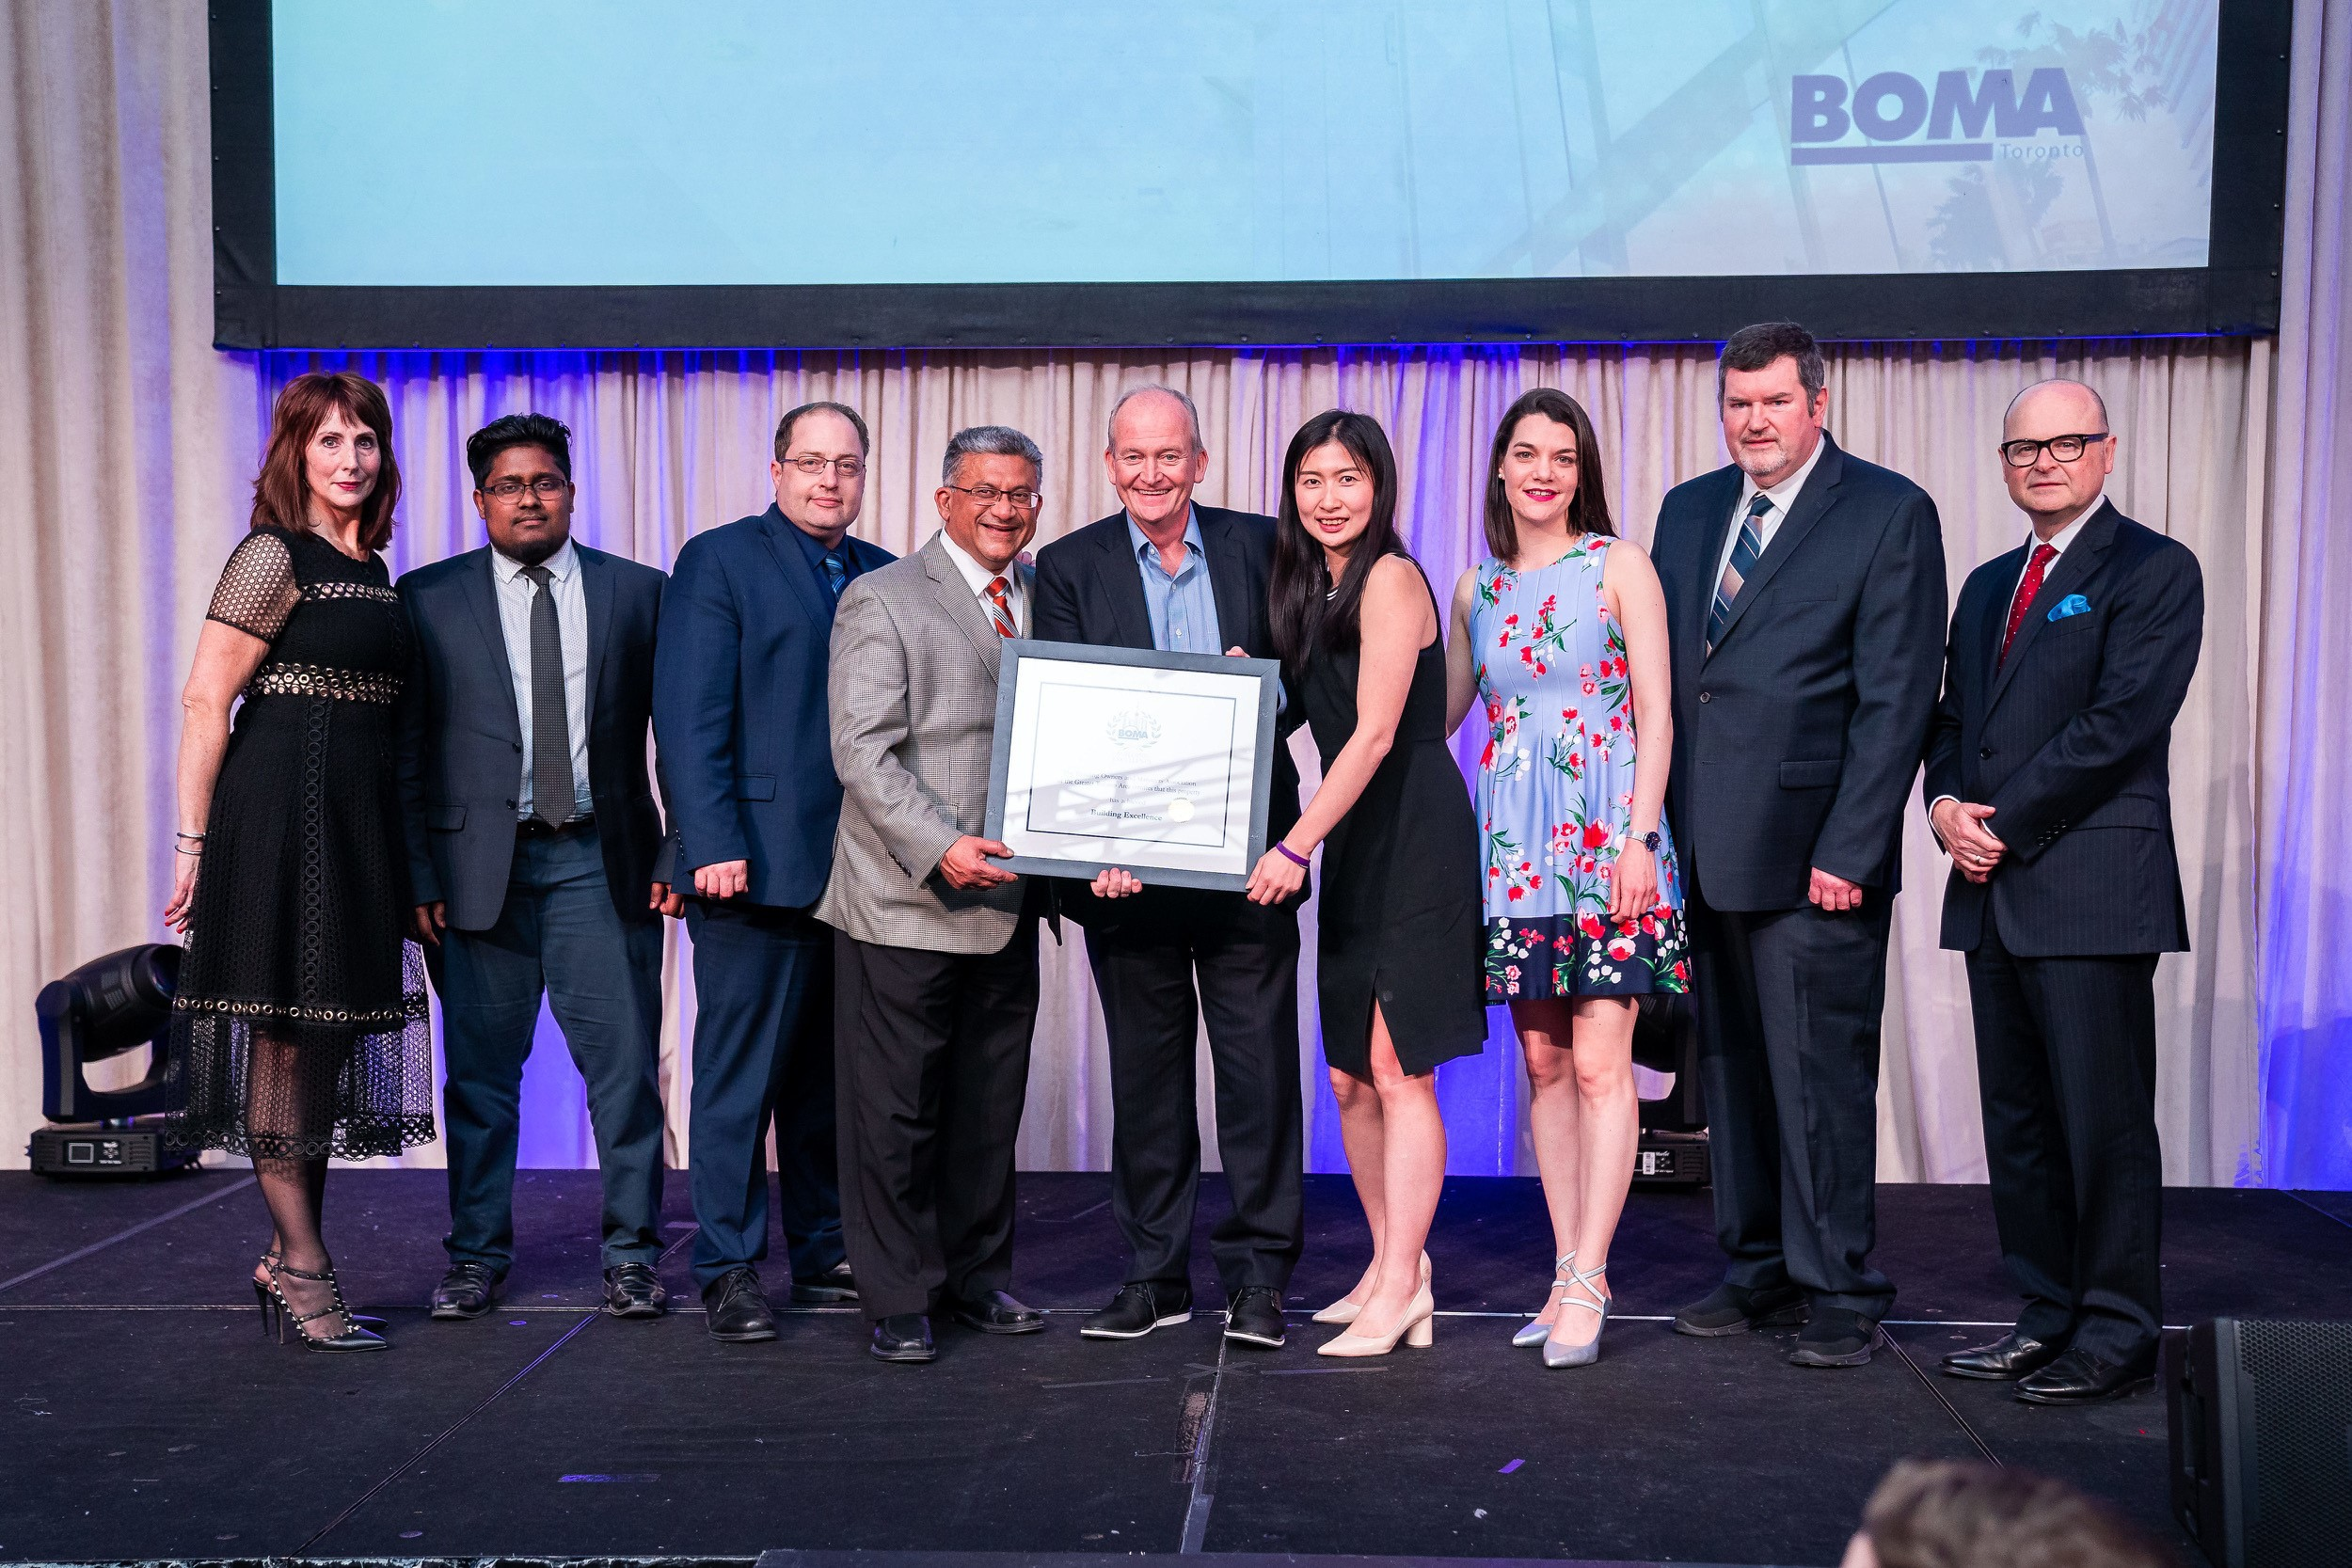 Postmedia Place Management Team Accepting BOMA Award